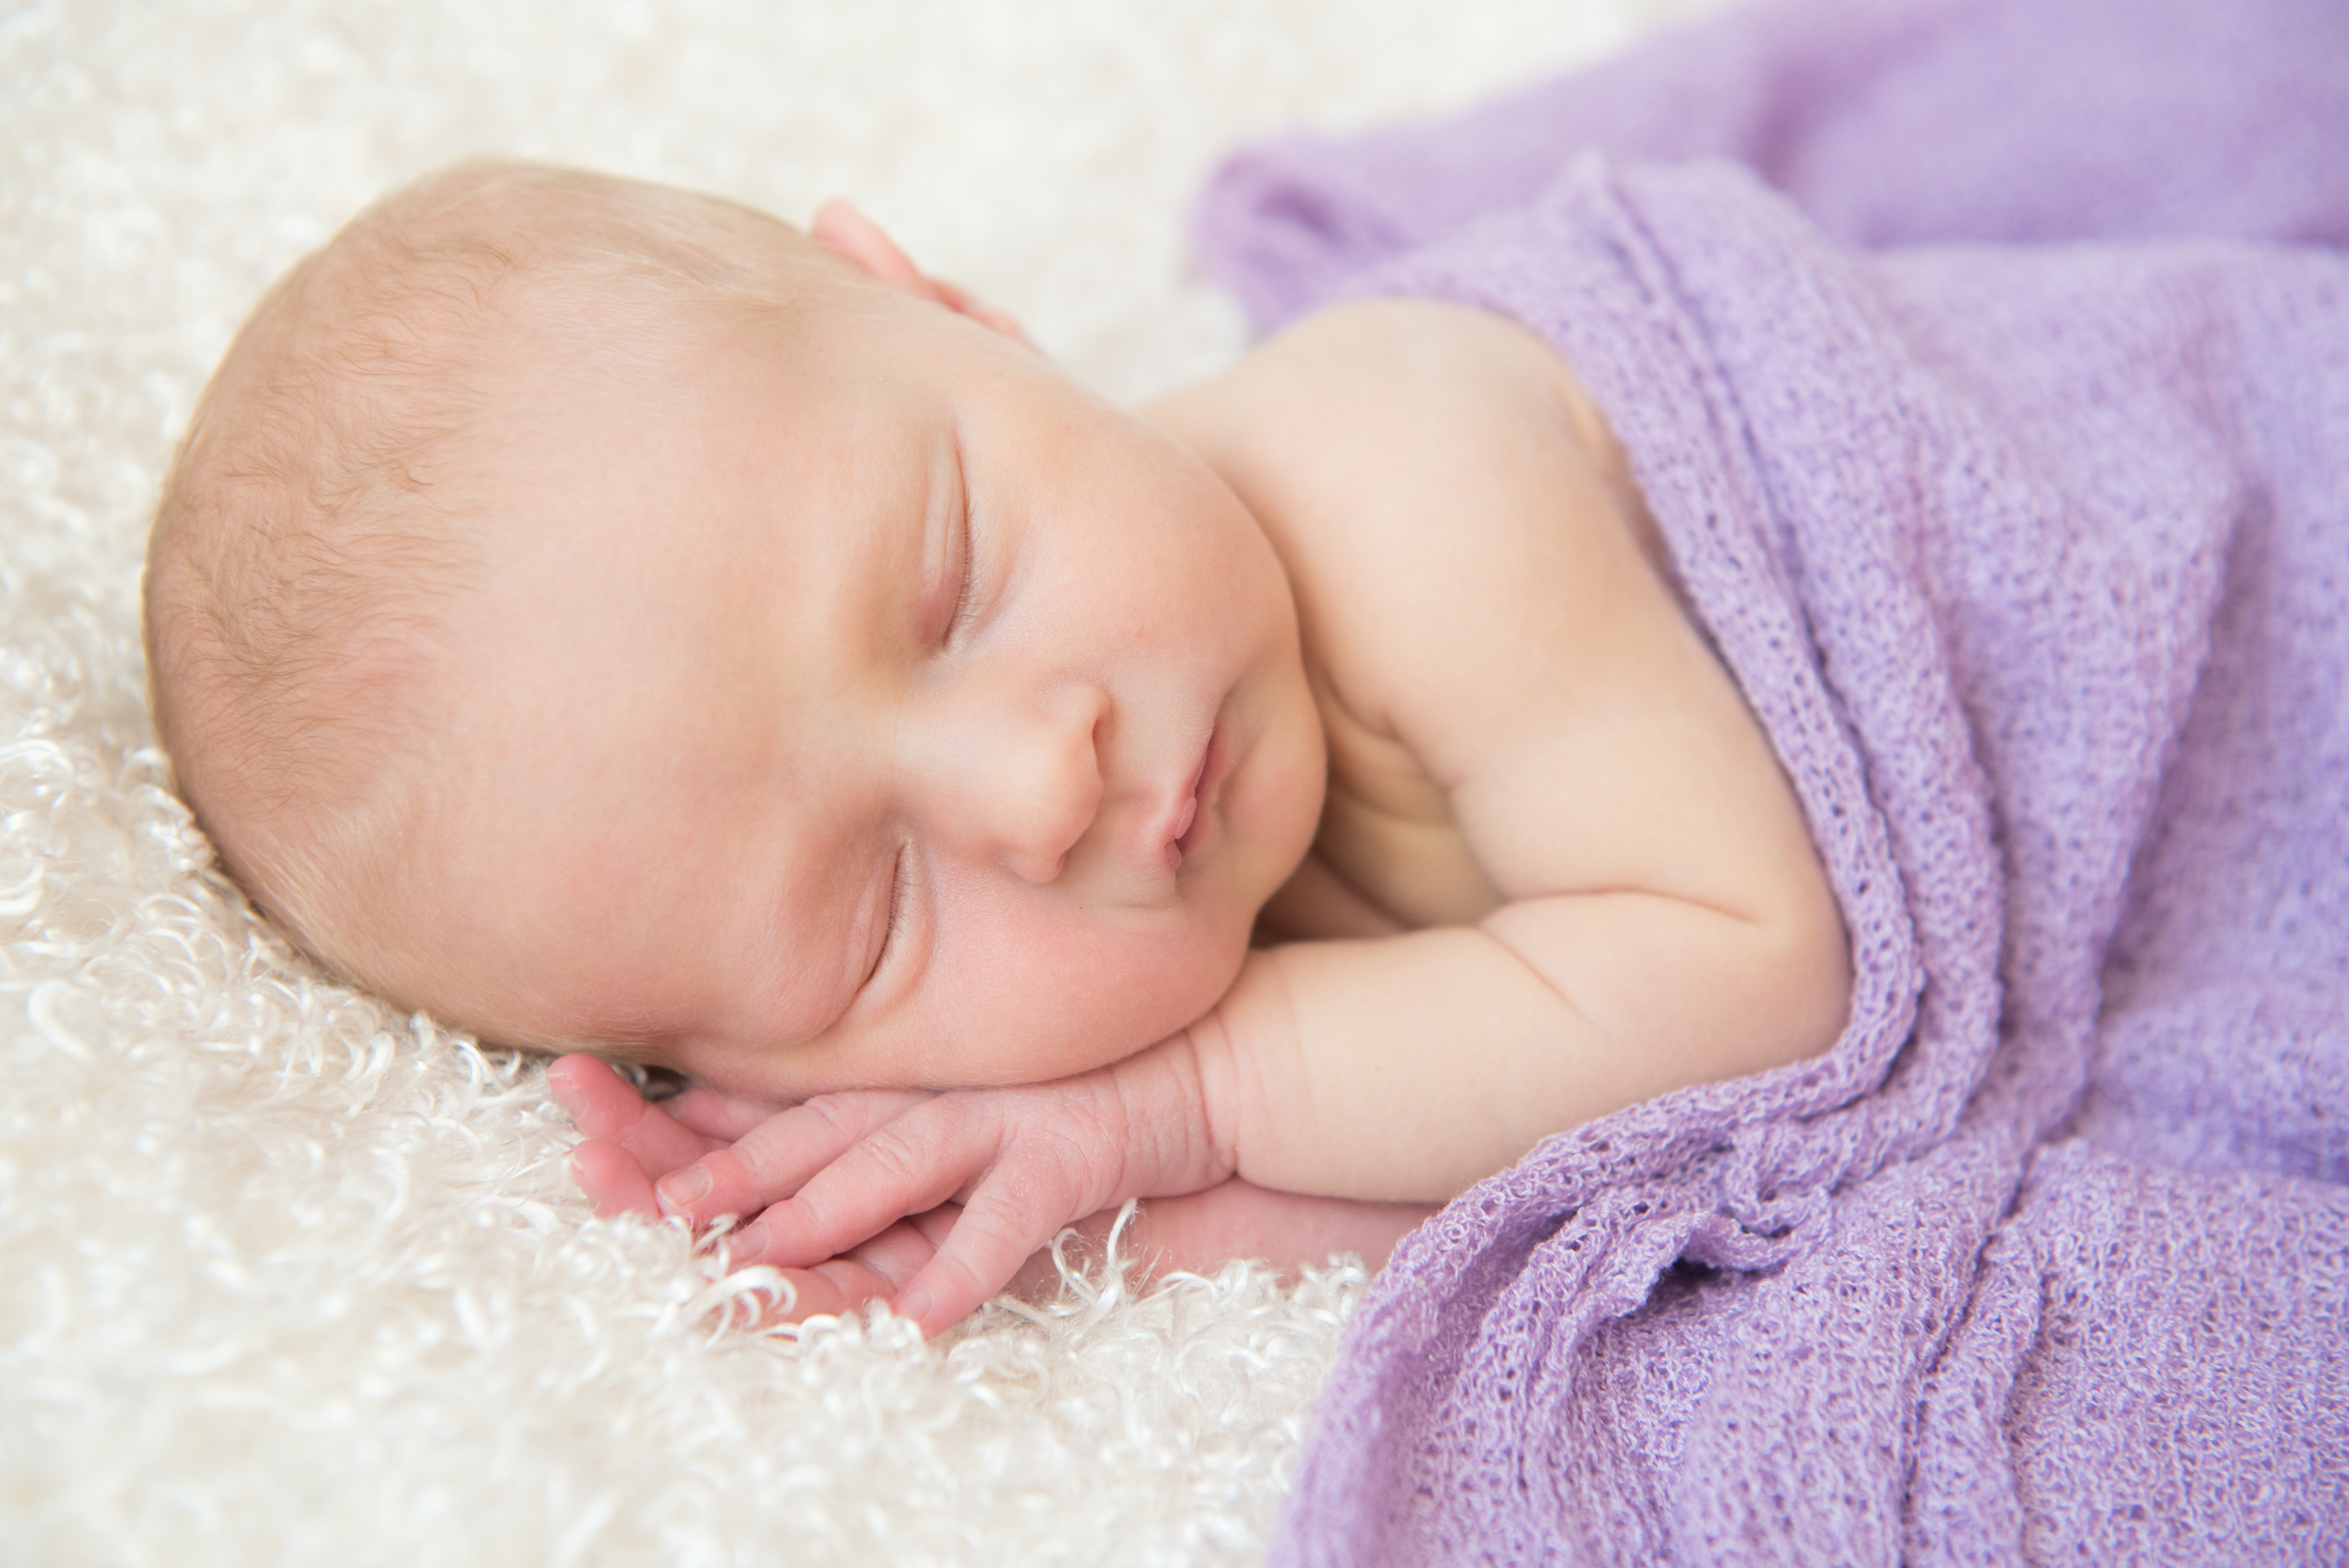 Greece NY home newborn photography ~ Violet, 8 days old